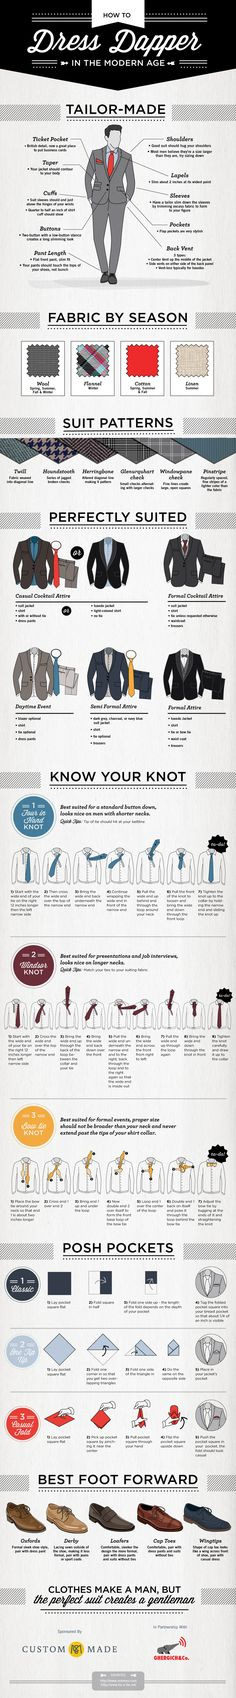 How To Dress Dapper In The Modern Age - Infographic